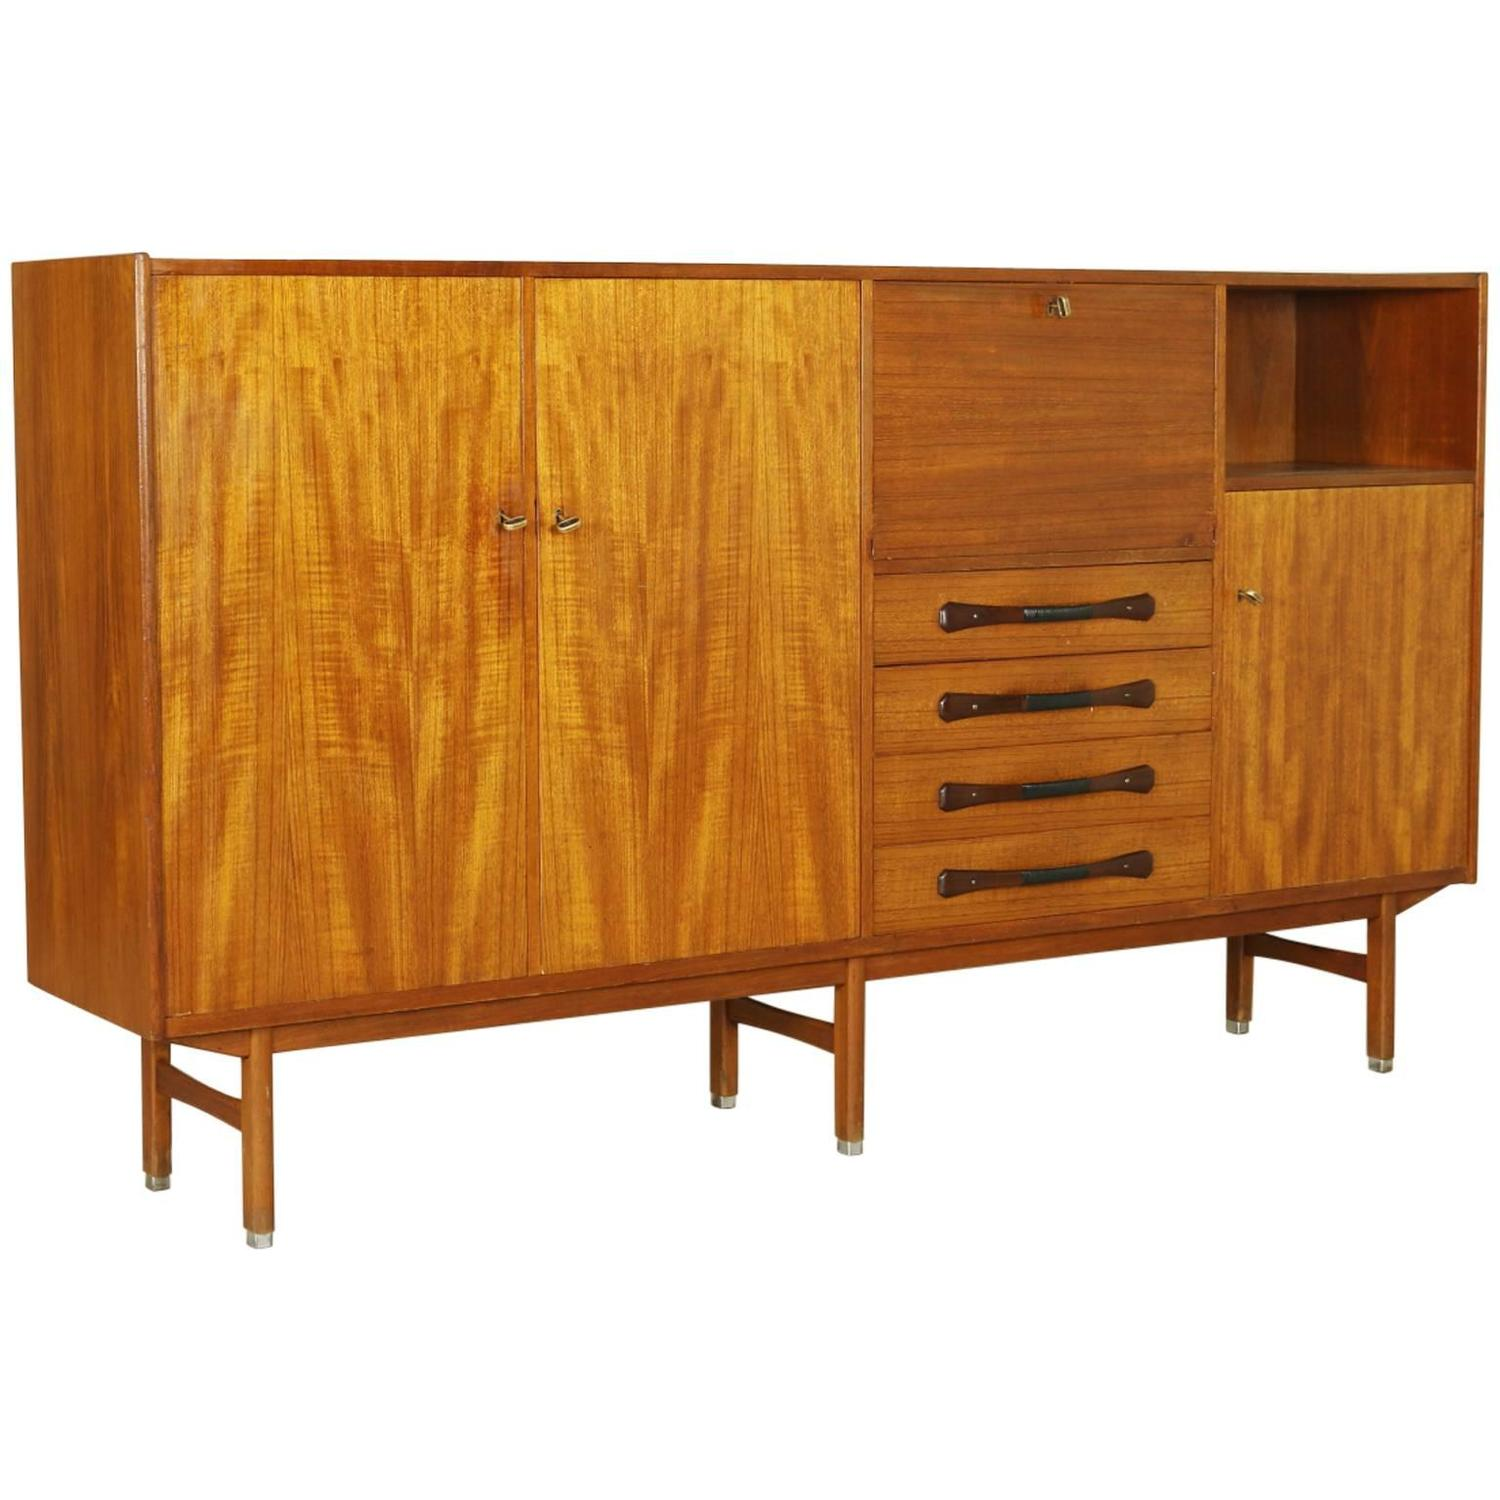 vintage teak highboard manufactured in italy 1960s at 1stdibs. Black Bedroom Furniture Sets. Home Design Ideas